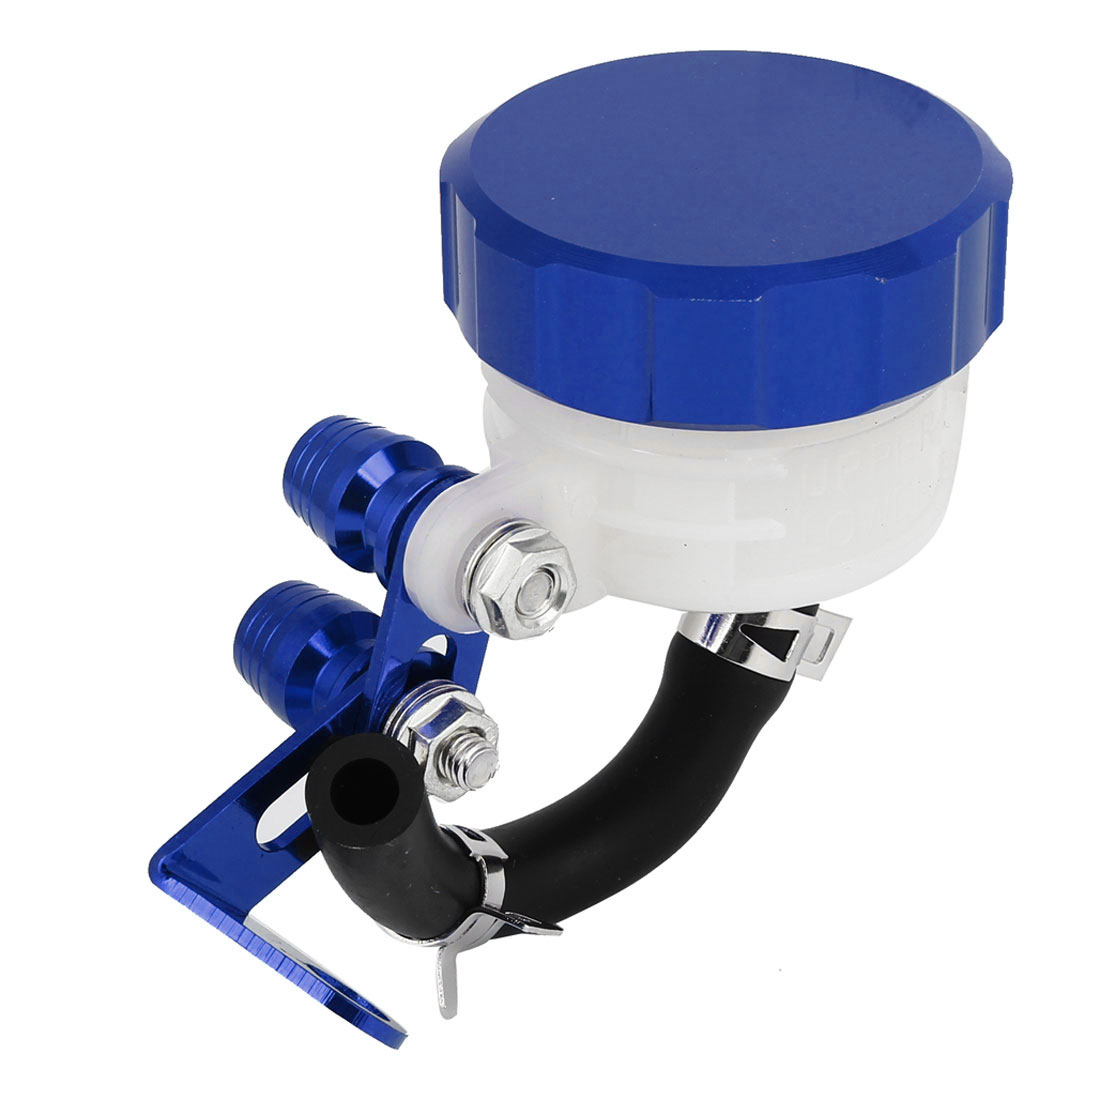 Blue Plastic Braking System Master Brake Reservoir Oil Cup for Motorbike